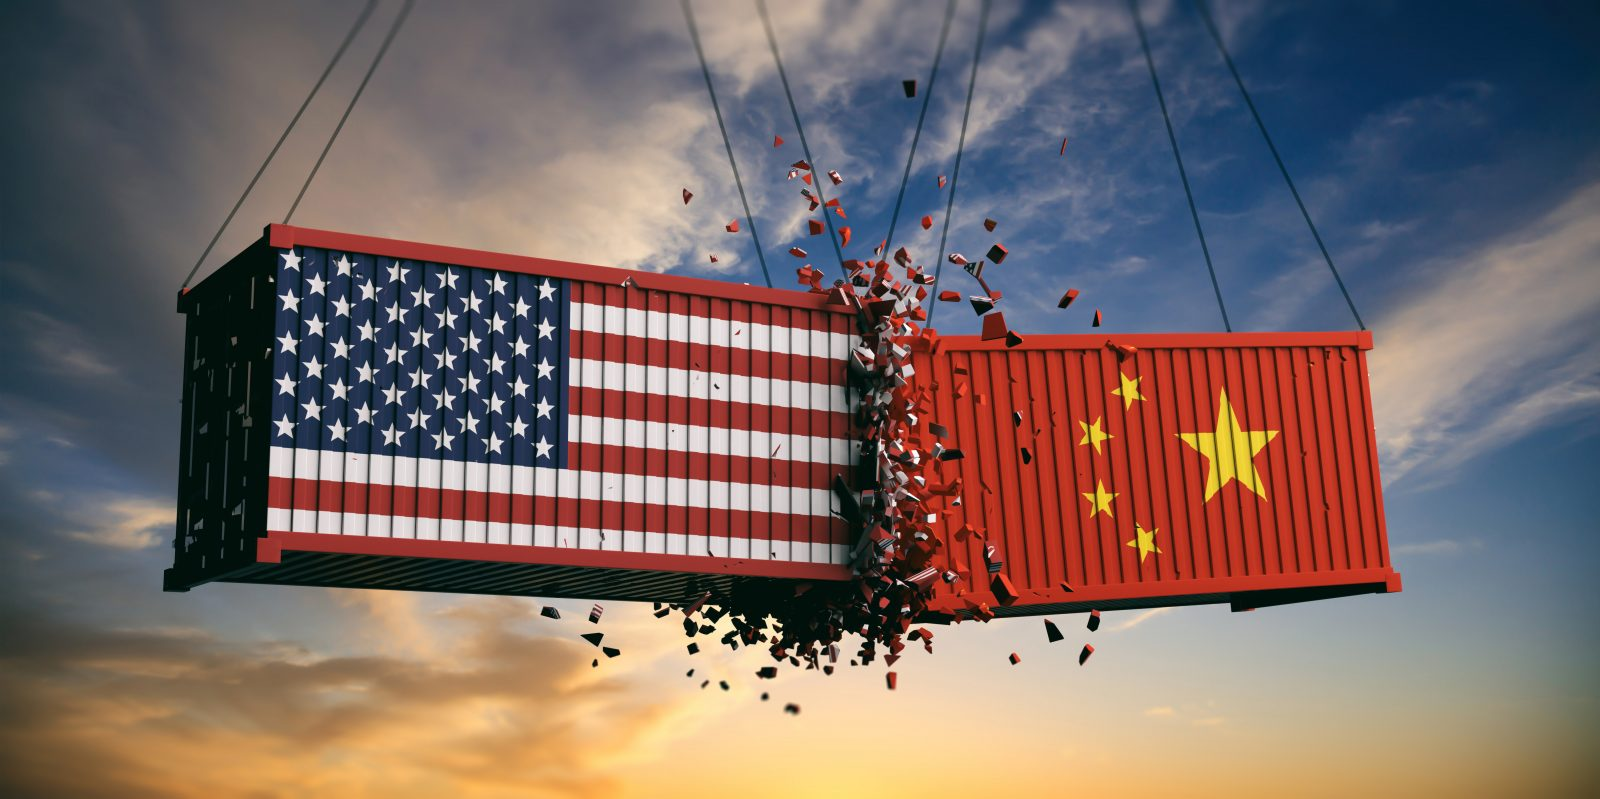 Trade tensions between the United States and China